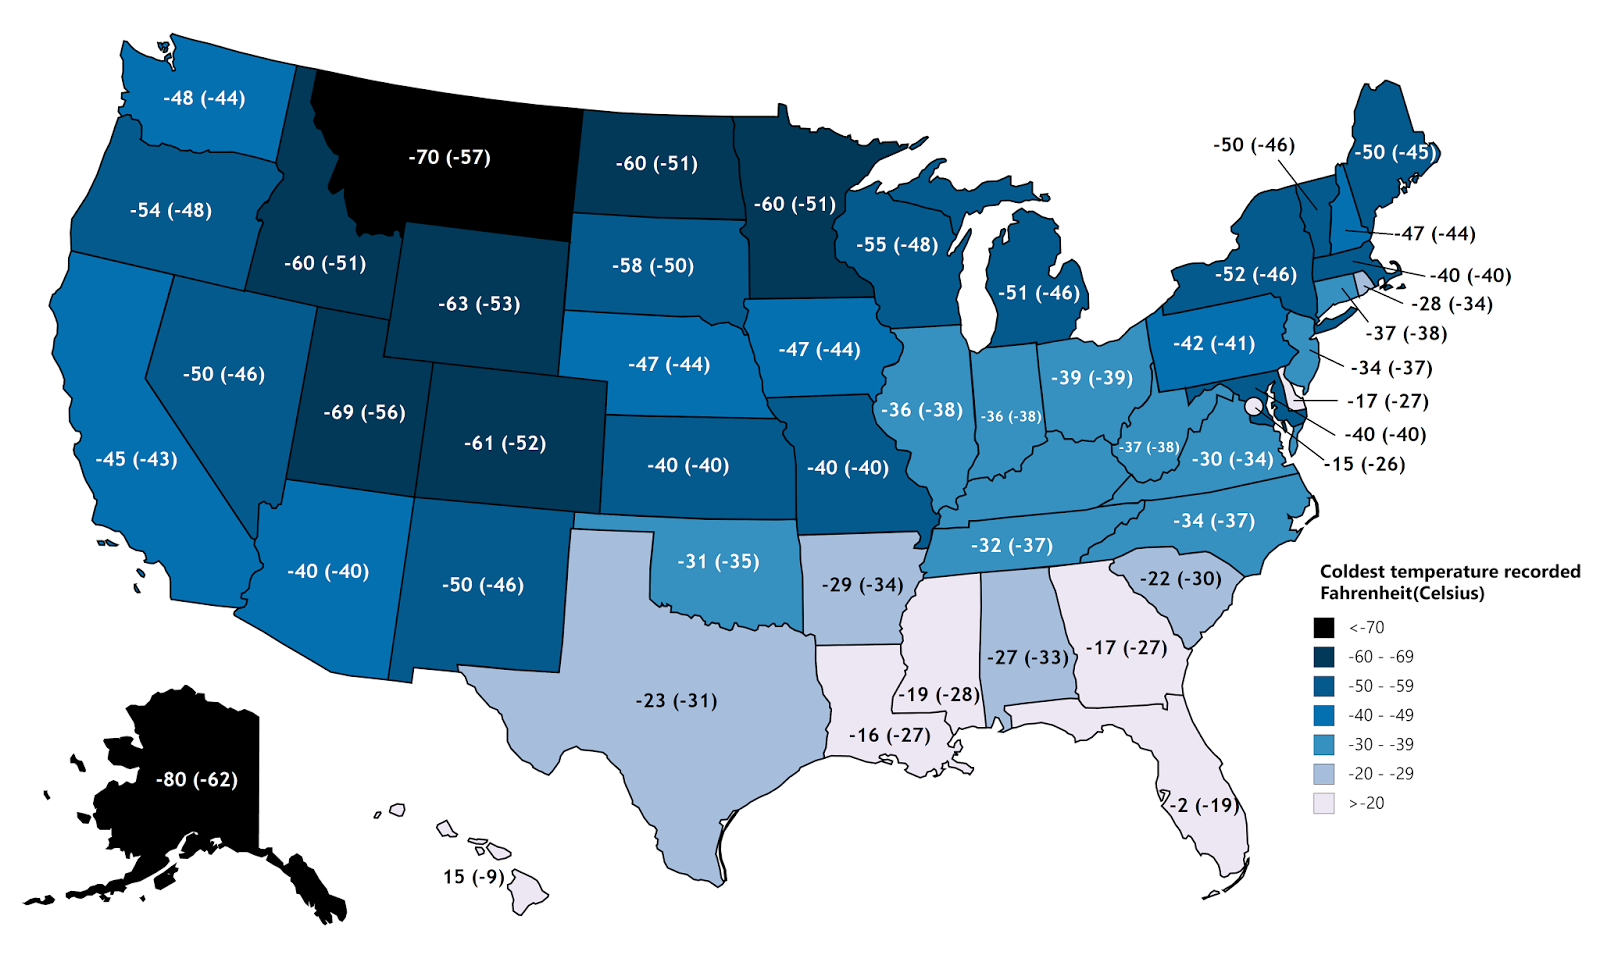 Coldest temperature ever recorded in each state in Fahrenheit & Celsius